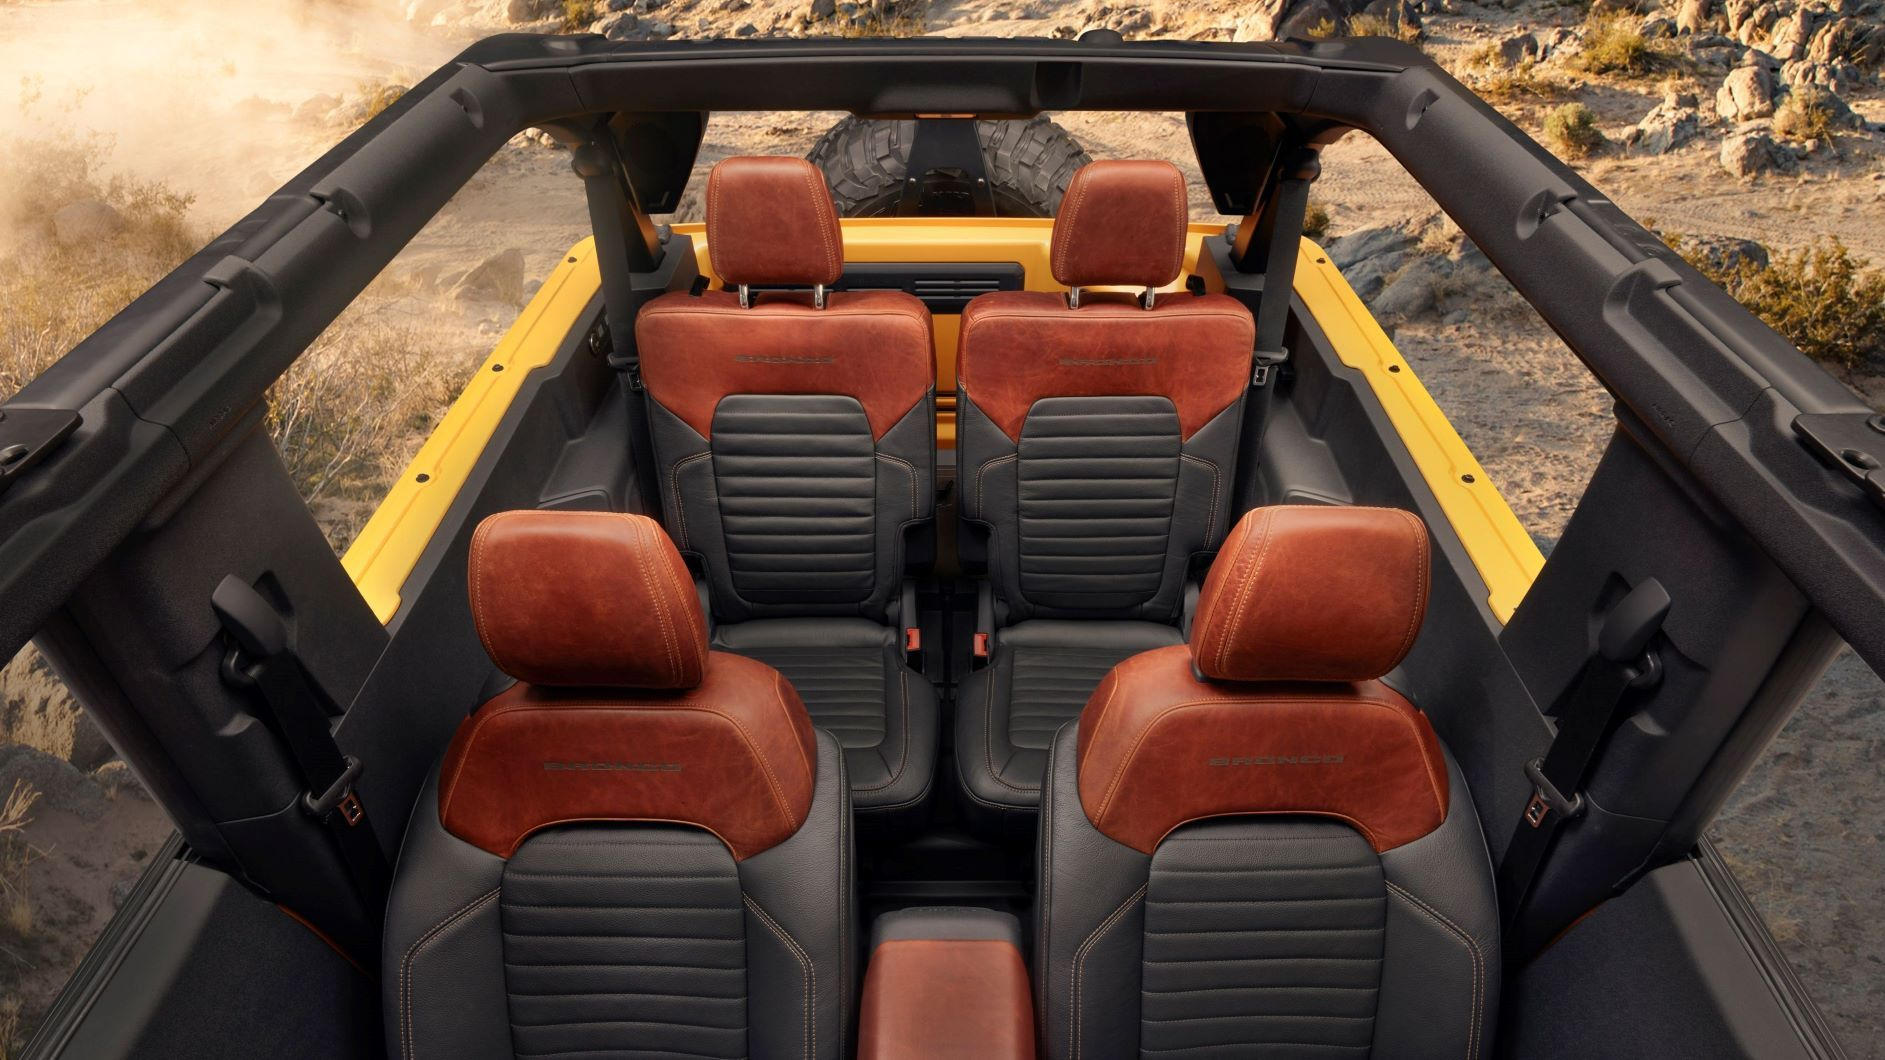 2021 ford bronco 2 door interior